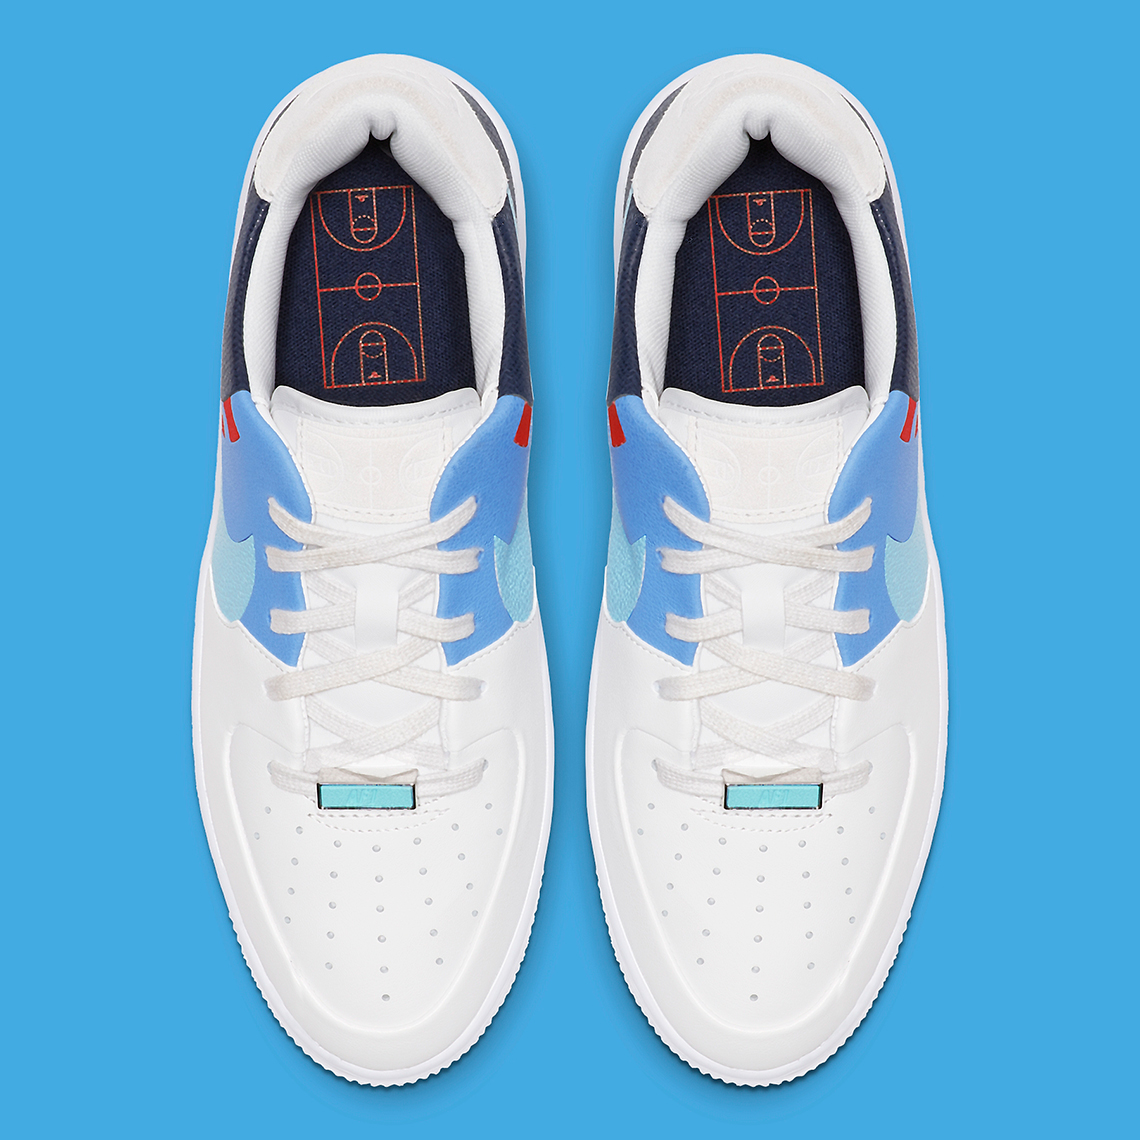 pas cher pour réduction 79856 763e1 Nike Takes It Back to the Court With This Air Force 1 Sage ...